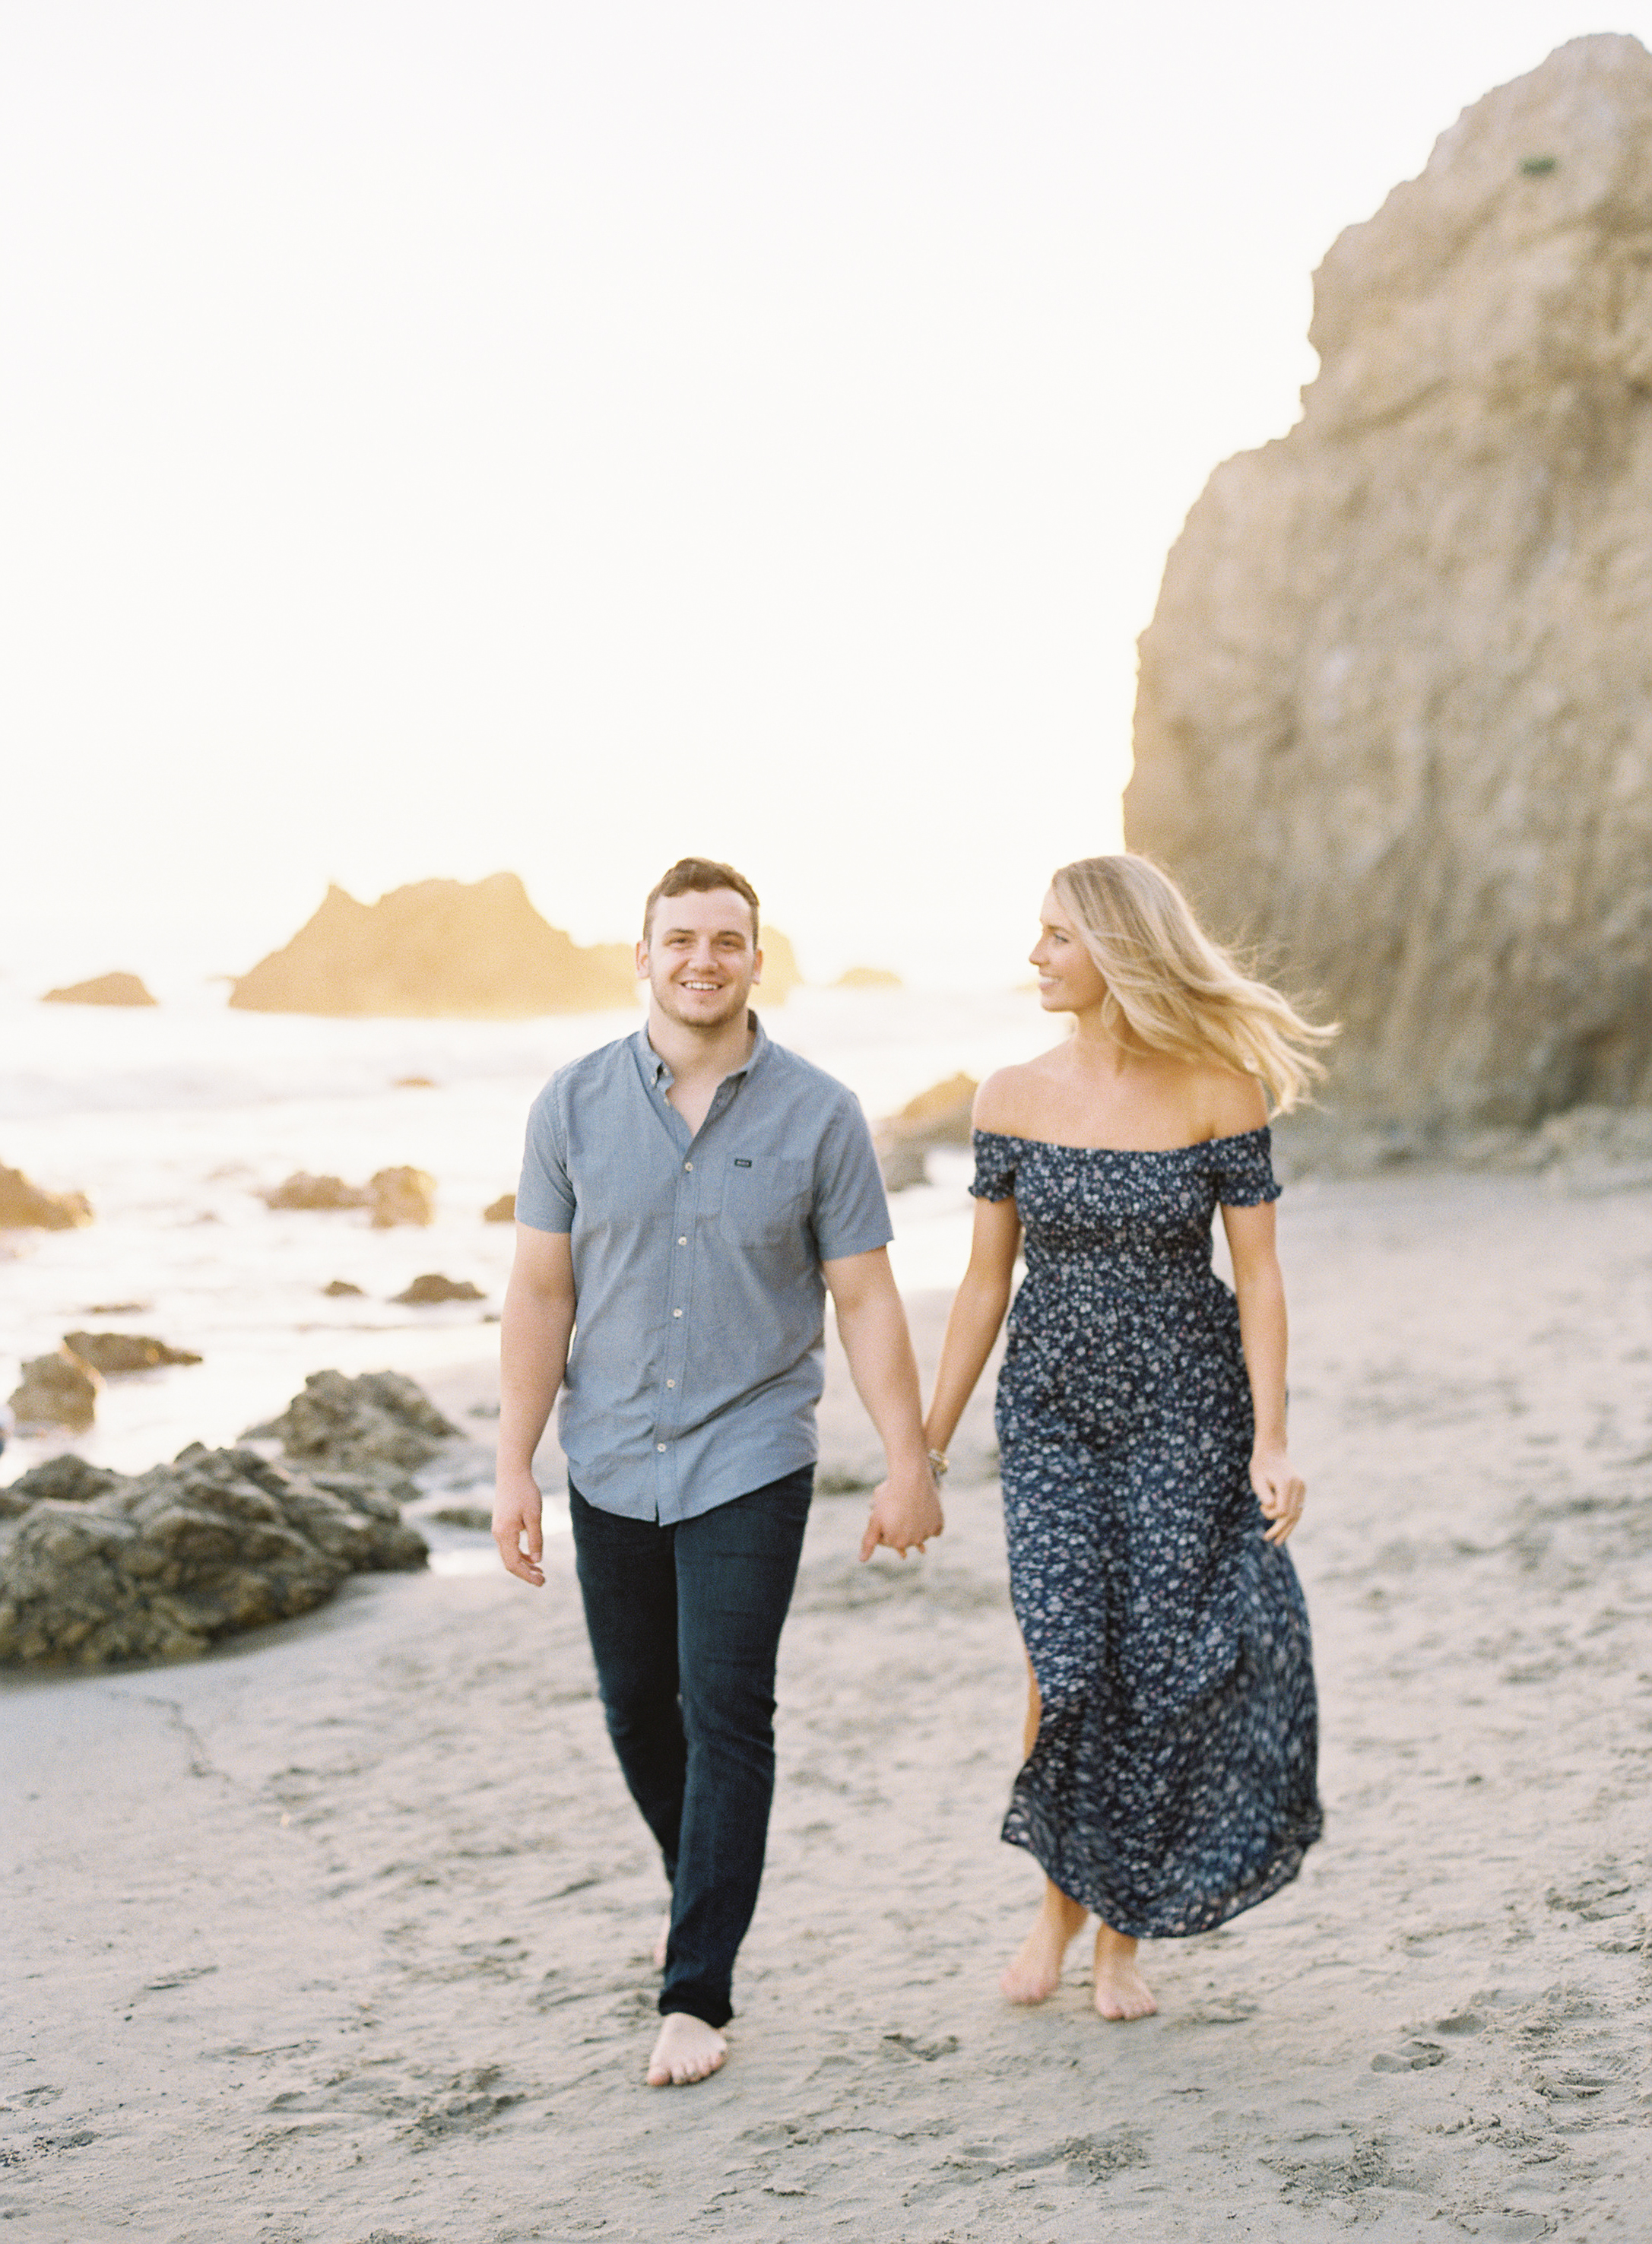 Taylor & Casey's Malibu Engagement-Carrie King Photographer-064.jpg